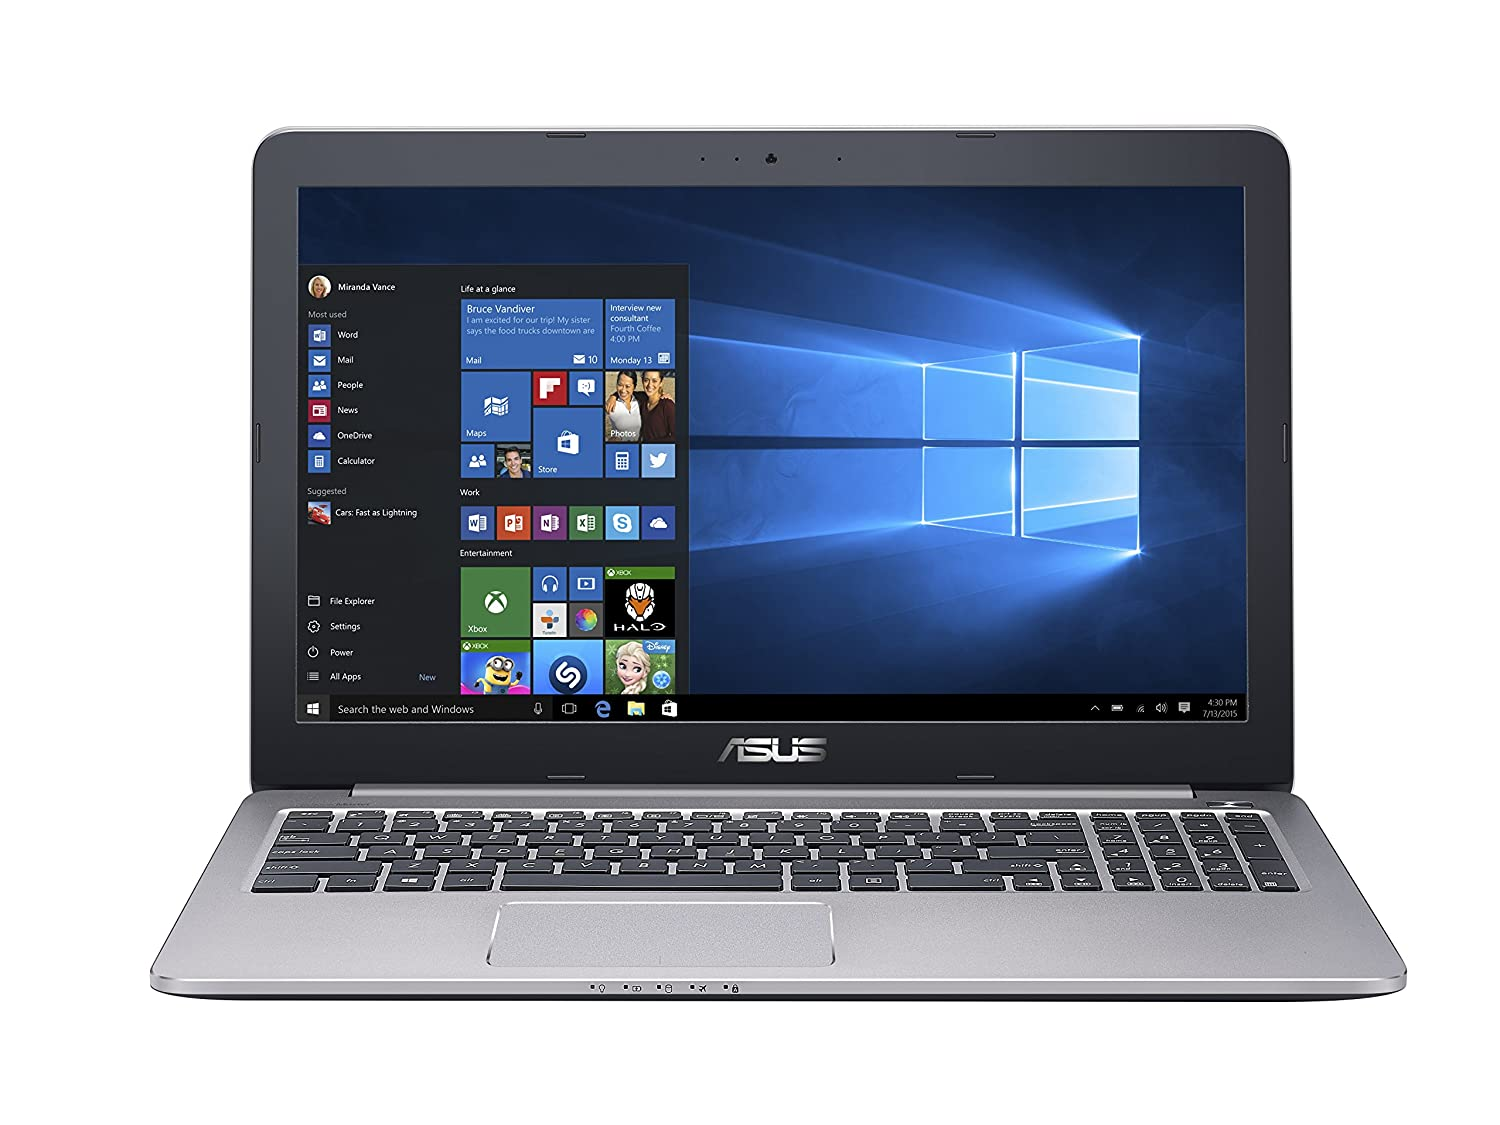 asus thin gaming laptop